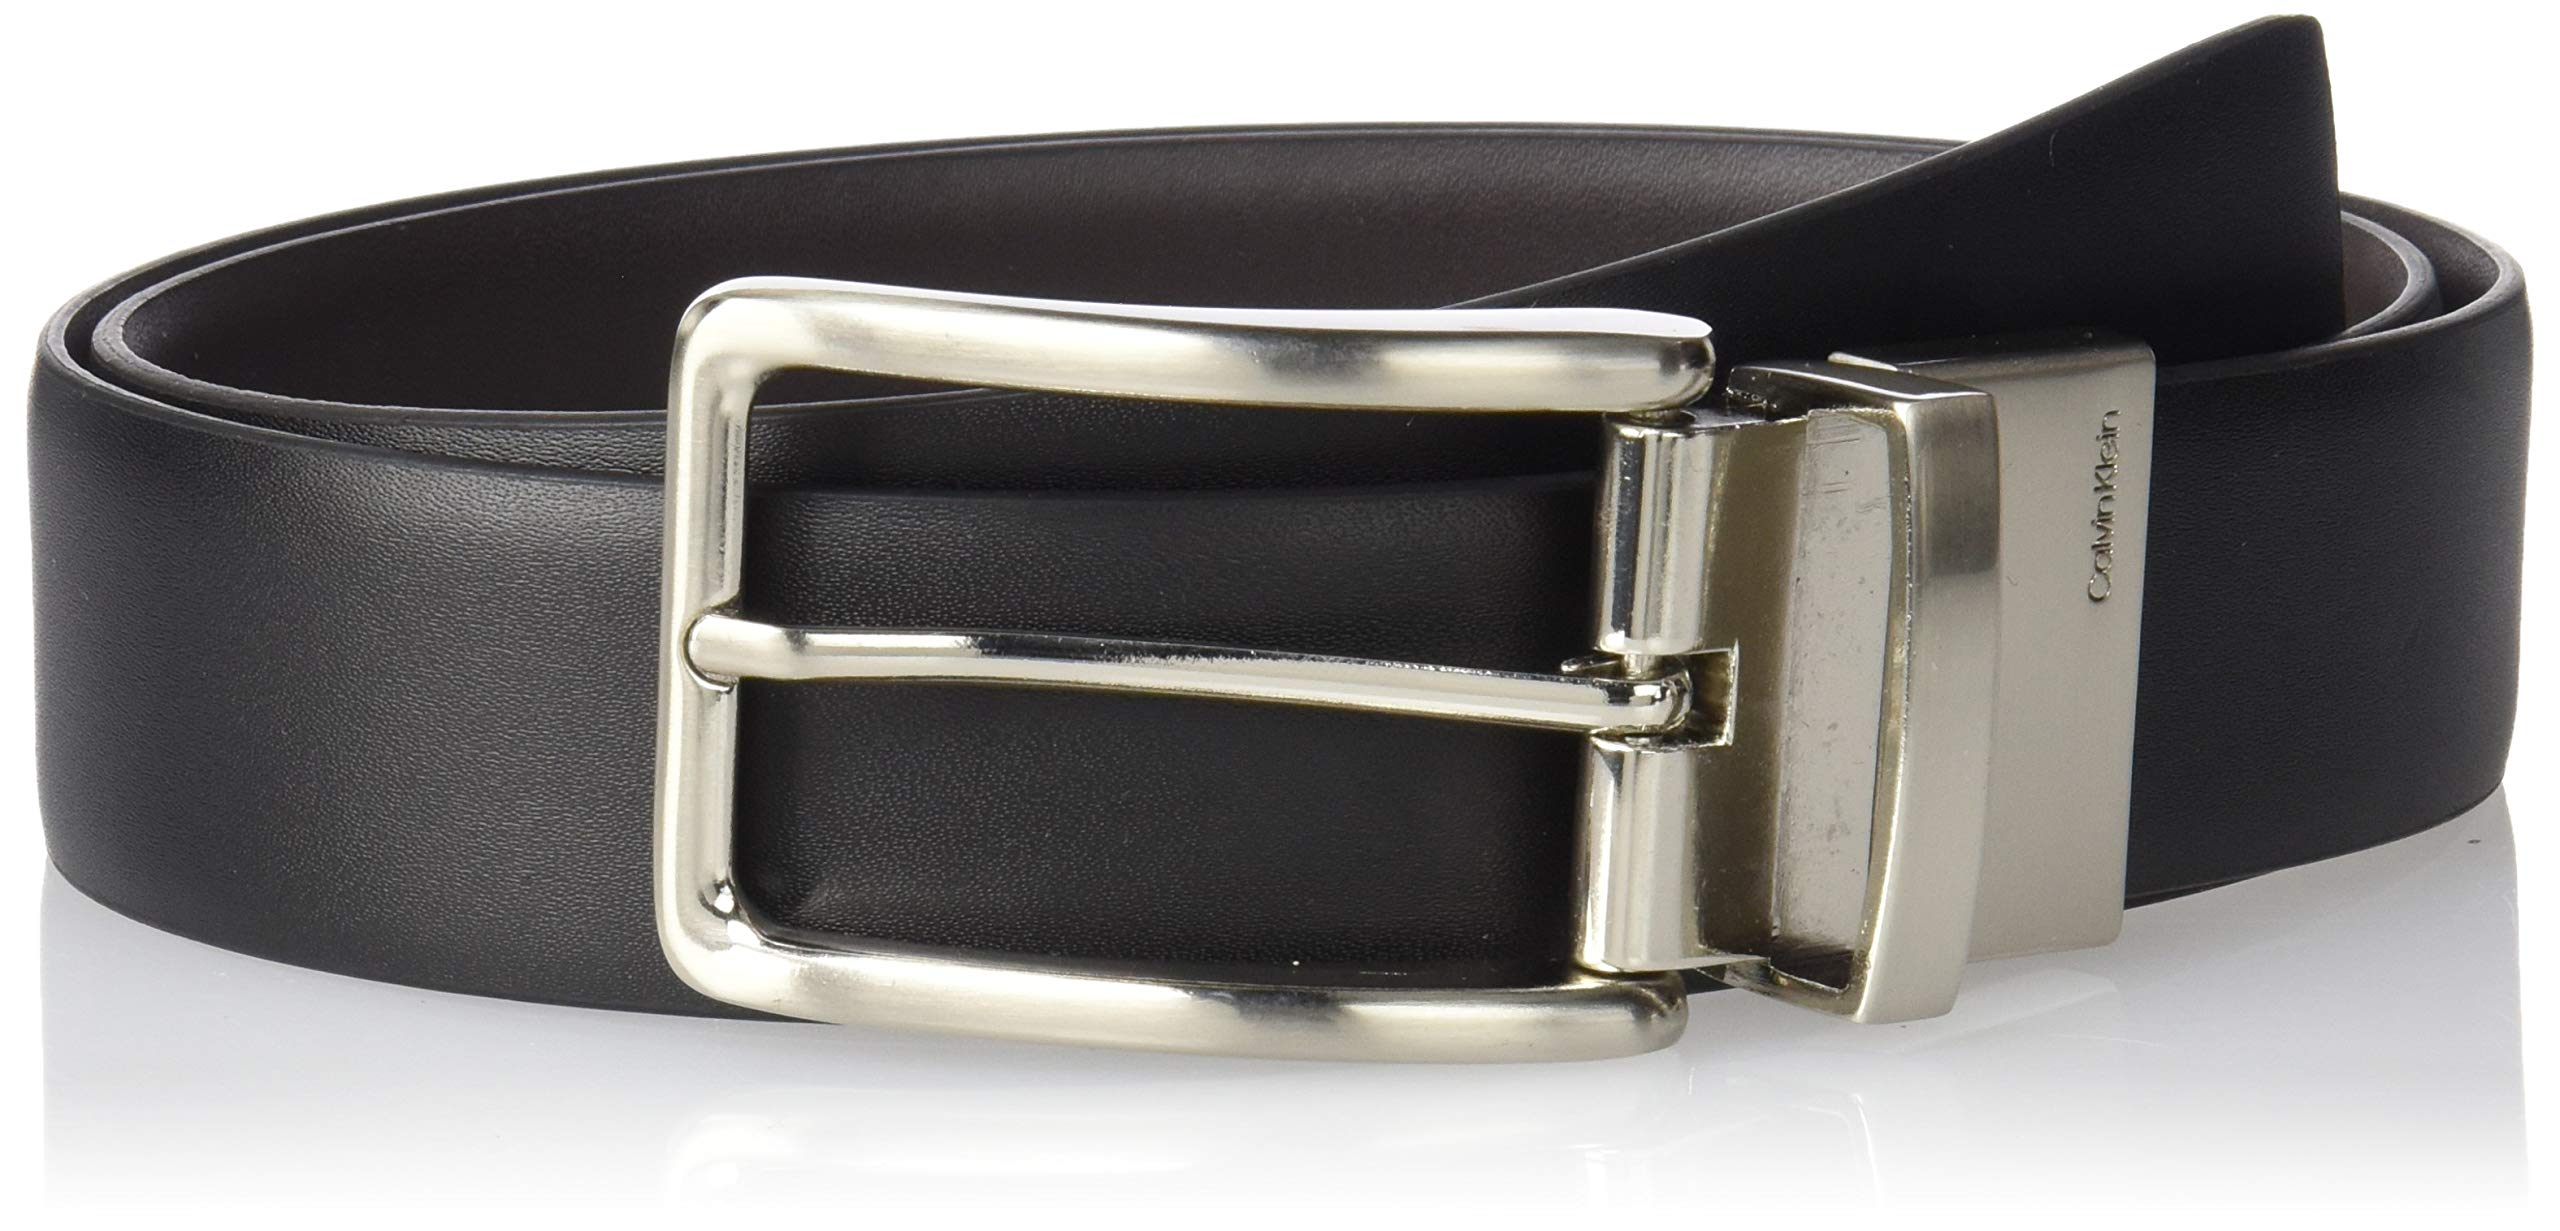 Calvin Klein Men's Reversible Feather Edge Strap Belt, Black/Brown, 40 US by Calvin Klein